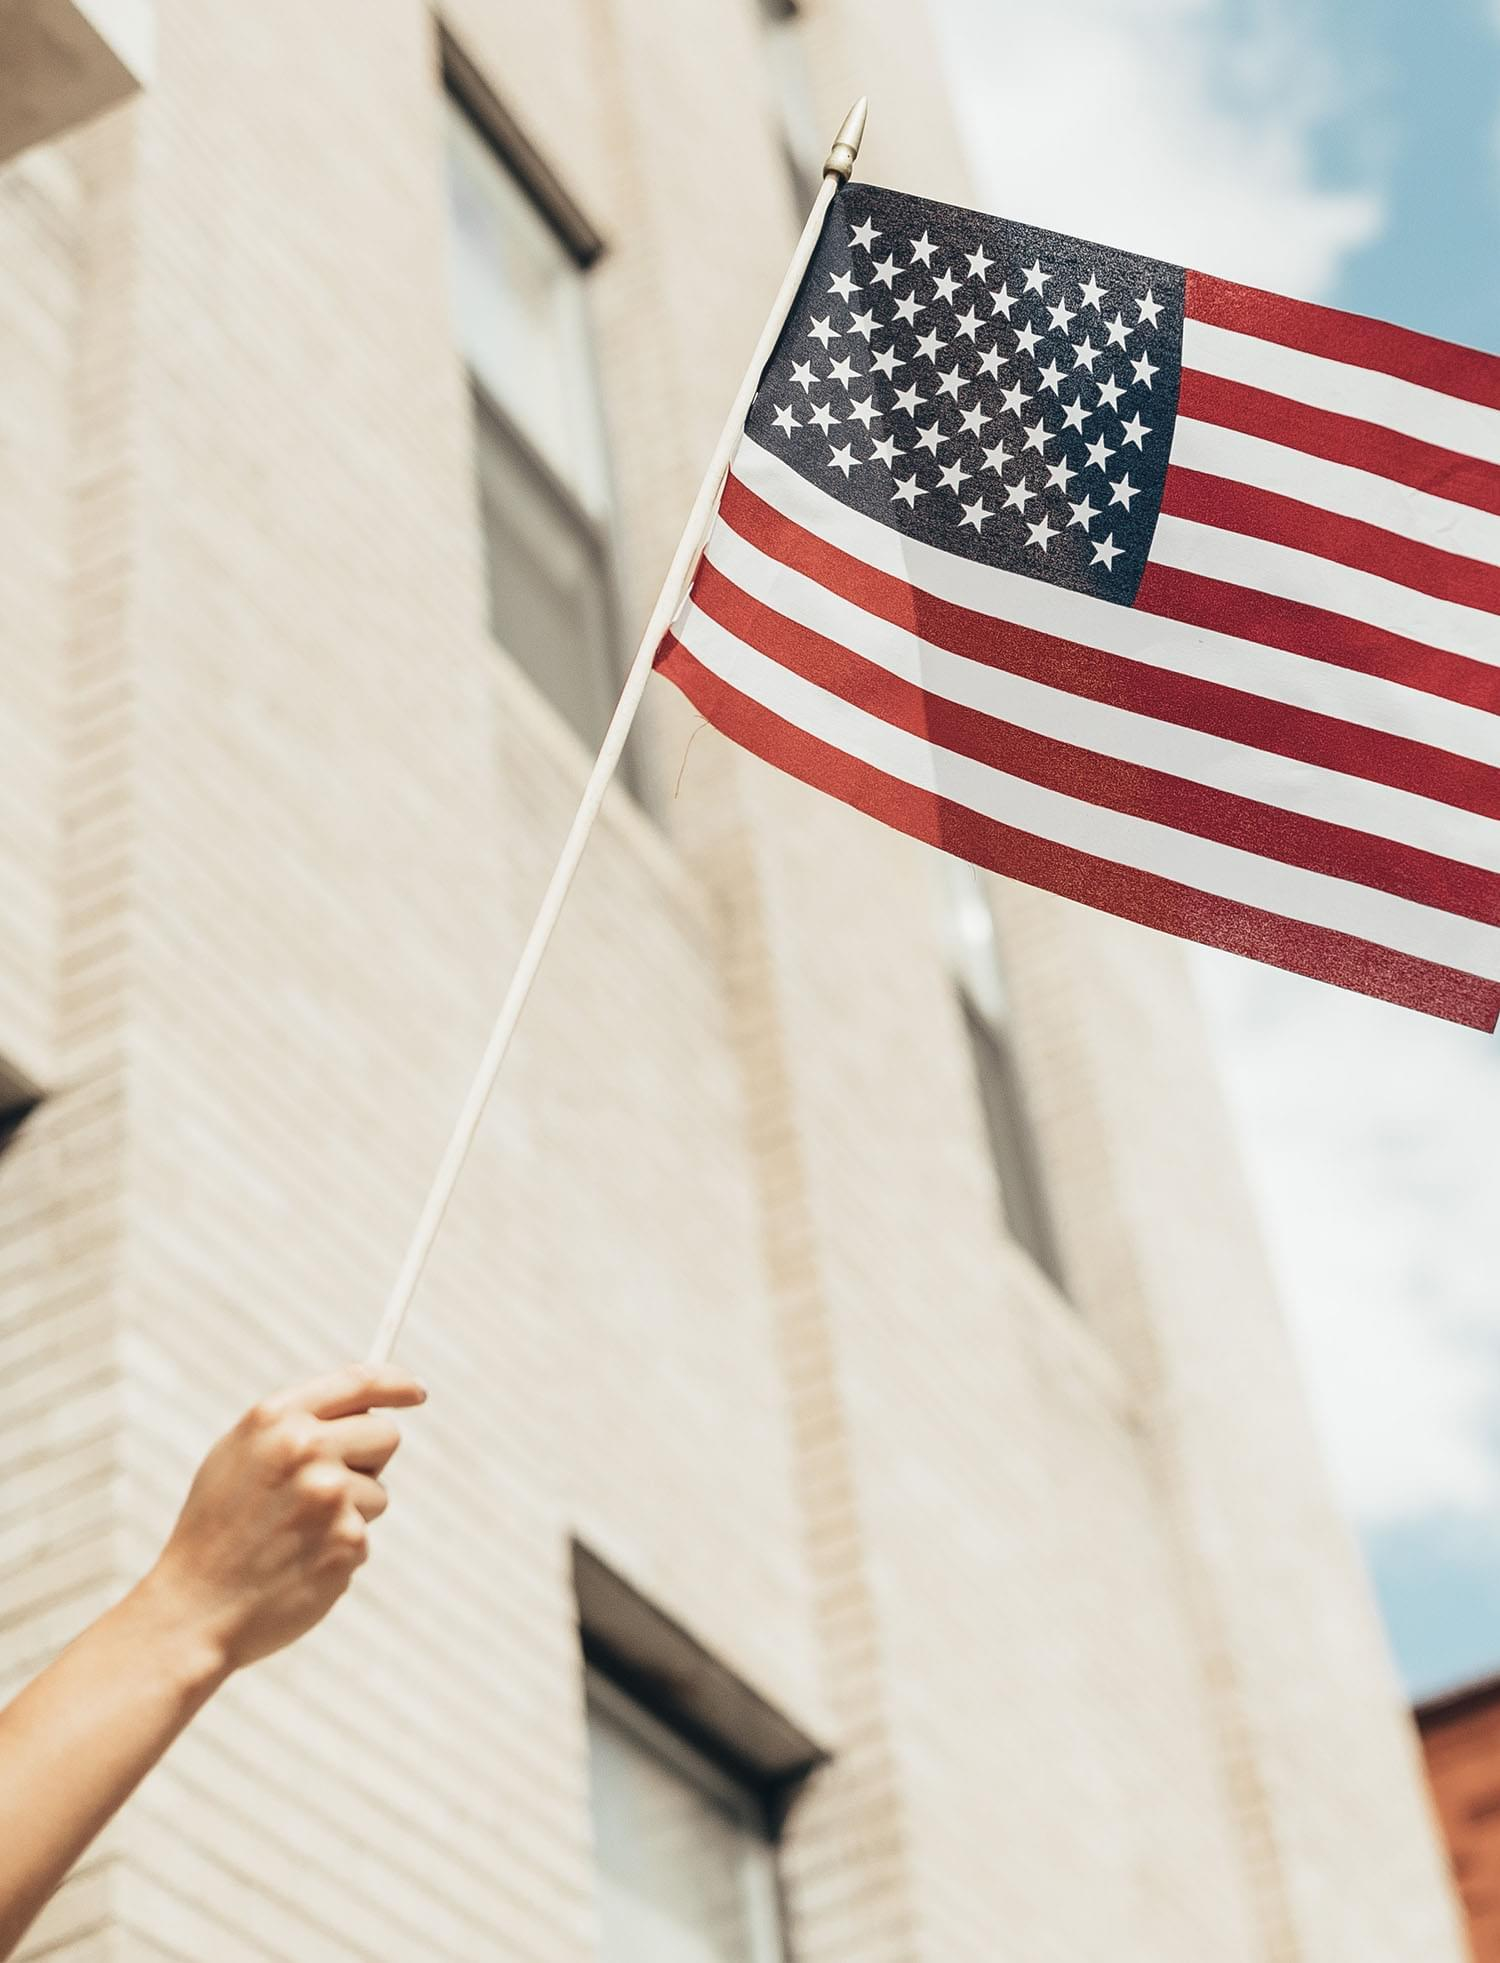 An arm holding the American flag